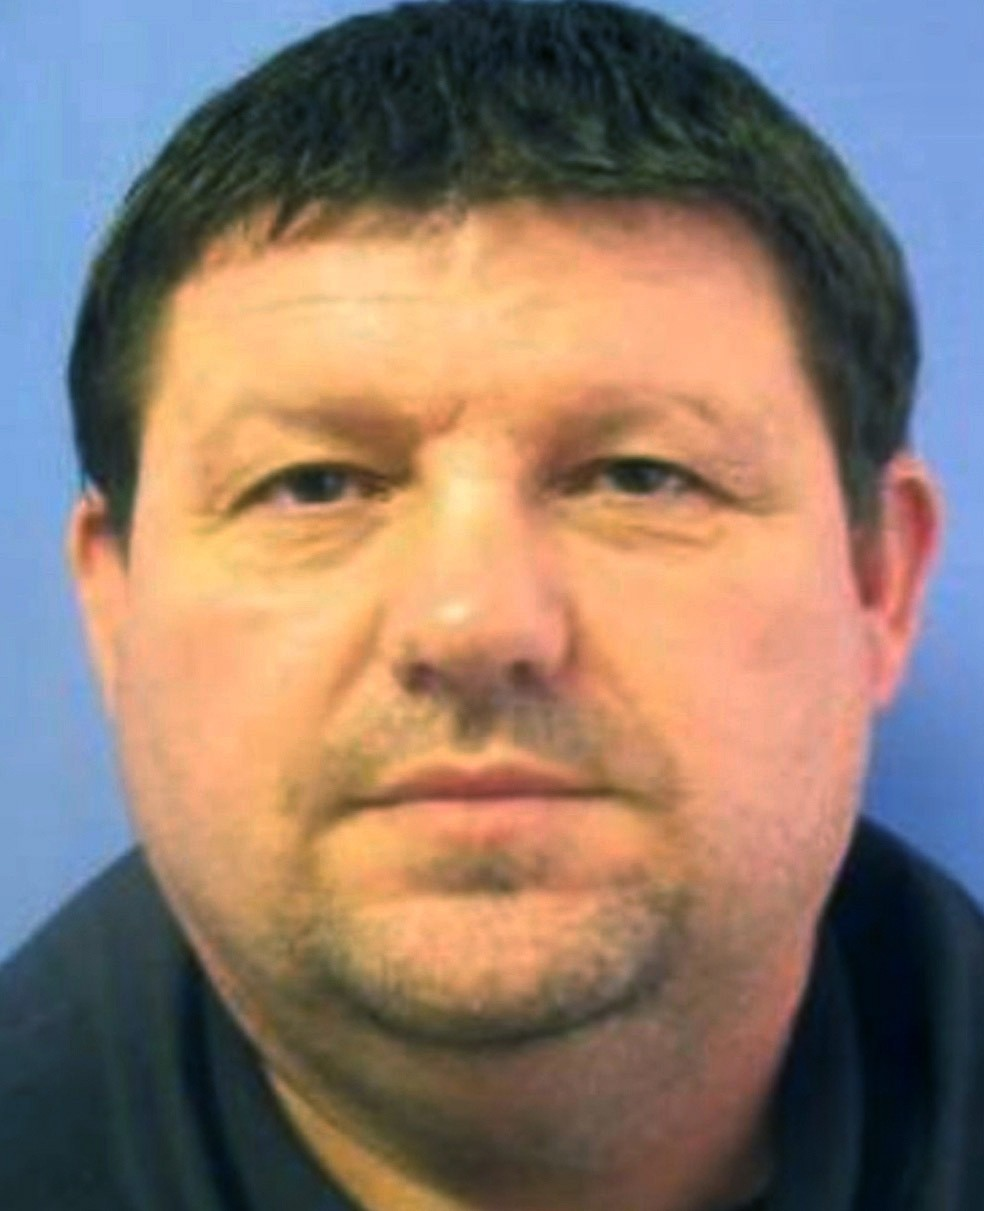 FILE - This image provided by the Mississippi Department of Public Safety shows Webster County Sheriff Timothy (Tim) Seth Mitchell, 53, of Eupora, Mis